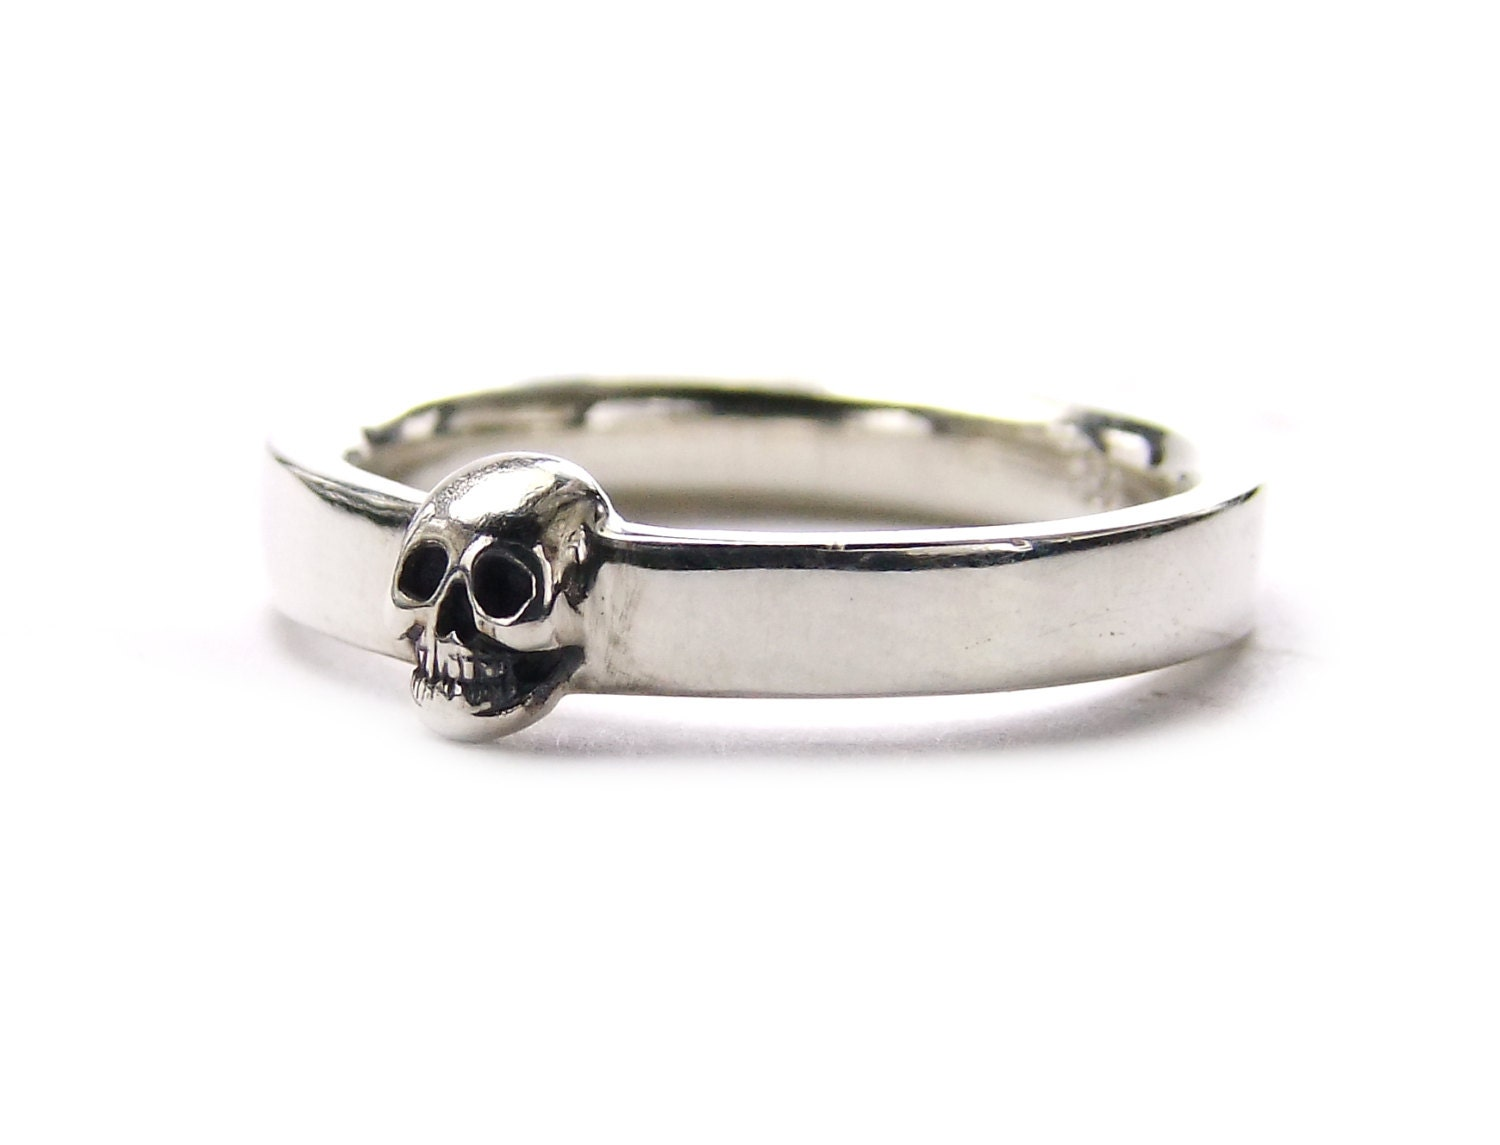 skull mens wedding ring dainty sterling goth groom ring psychobilly wedding band wedding set all sizes gift for him - Dainty Wedding Rings